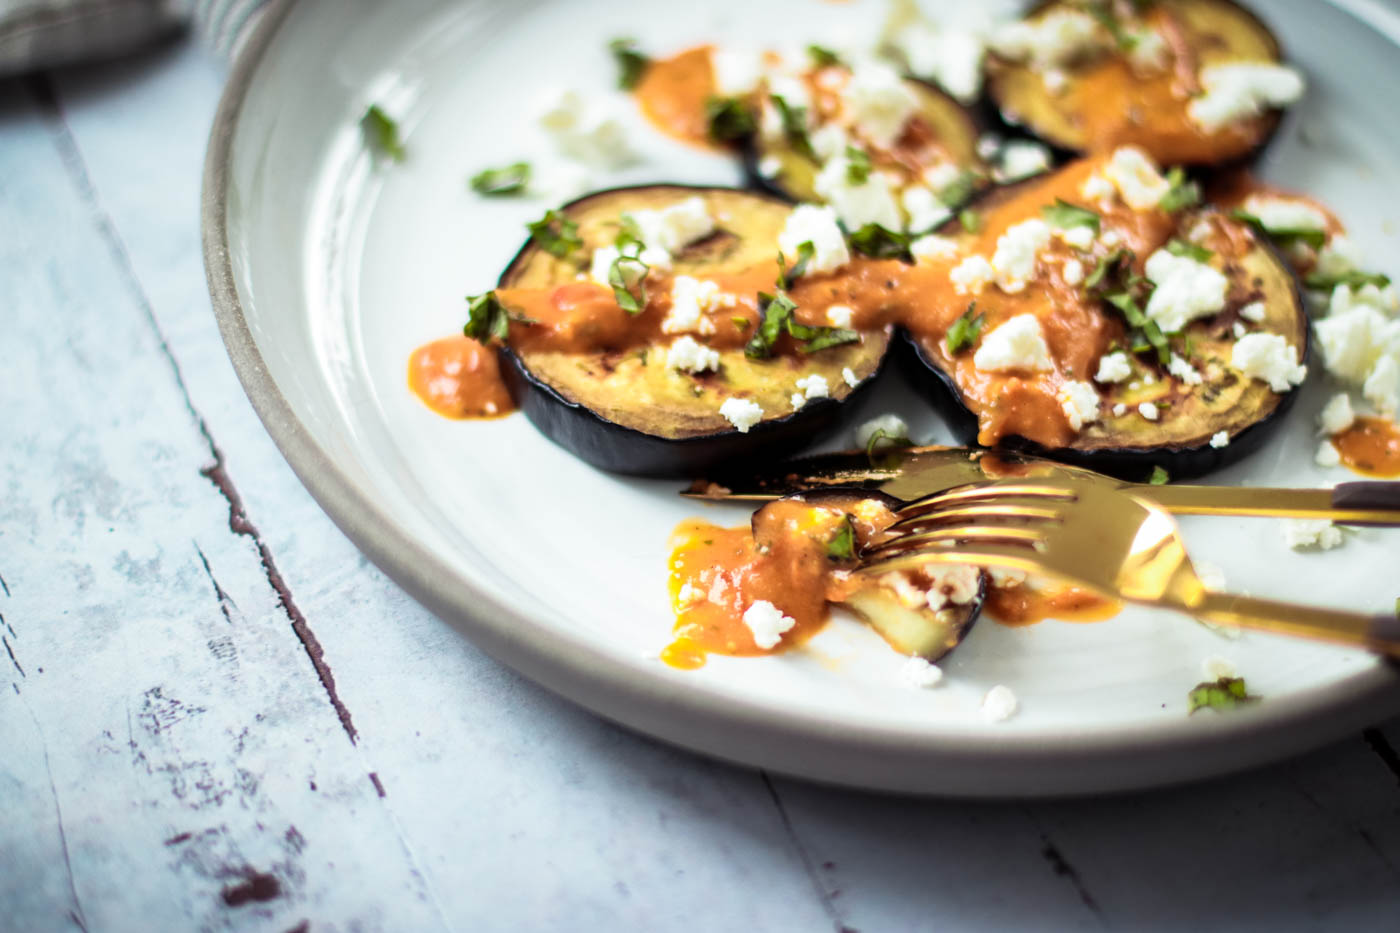 Easy Summer Lunch Grilled Eggplant with Tomato Sauce, Basil and Feta Cheese